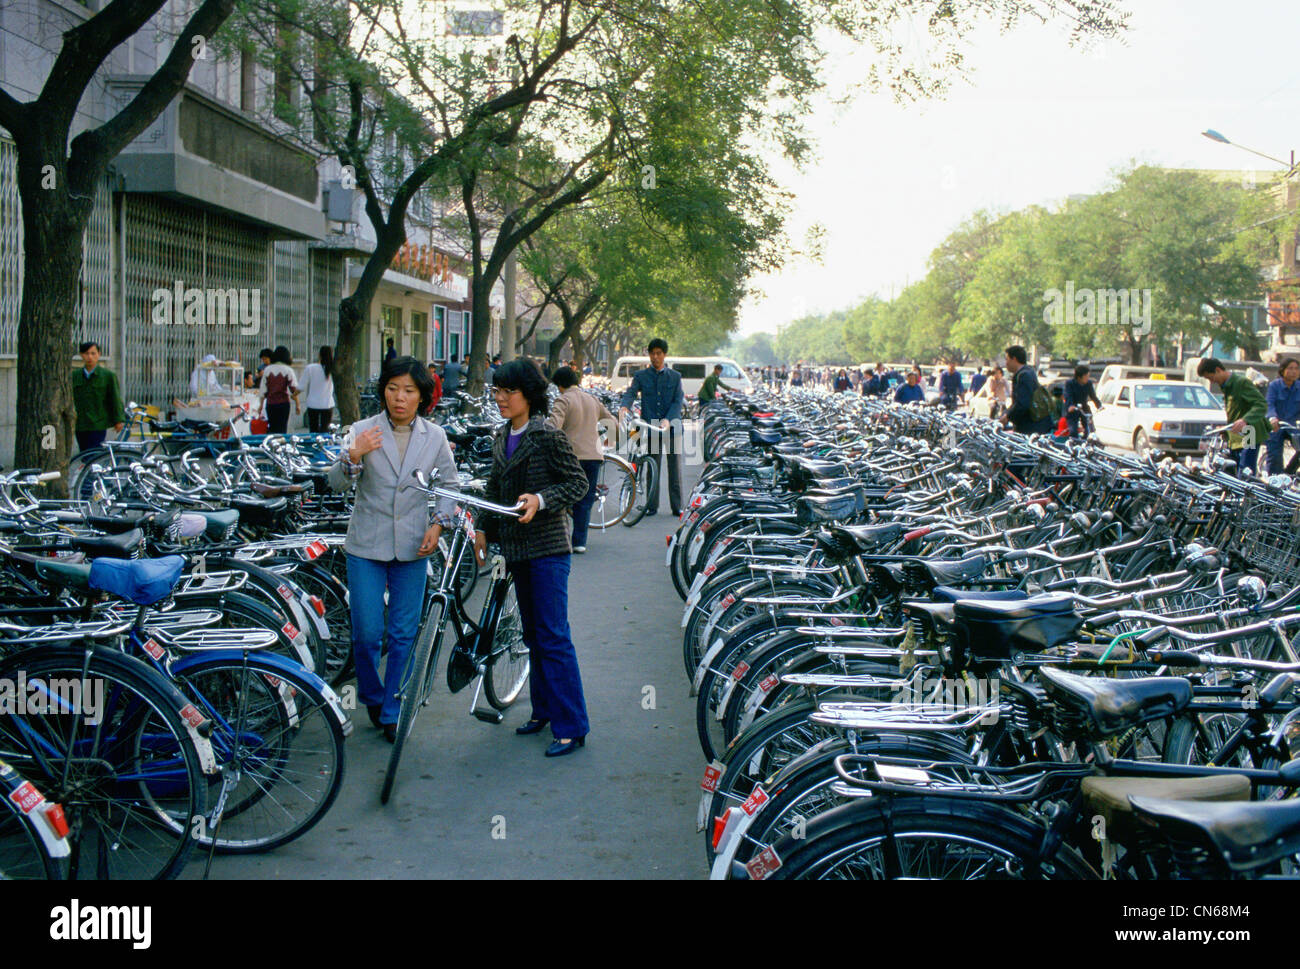 Young women parking bicycle in crowded bicycle park, Beijing, China - Stock Image